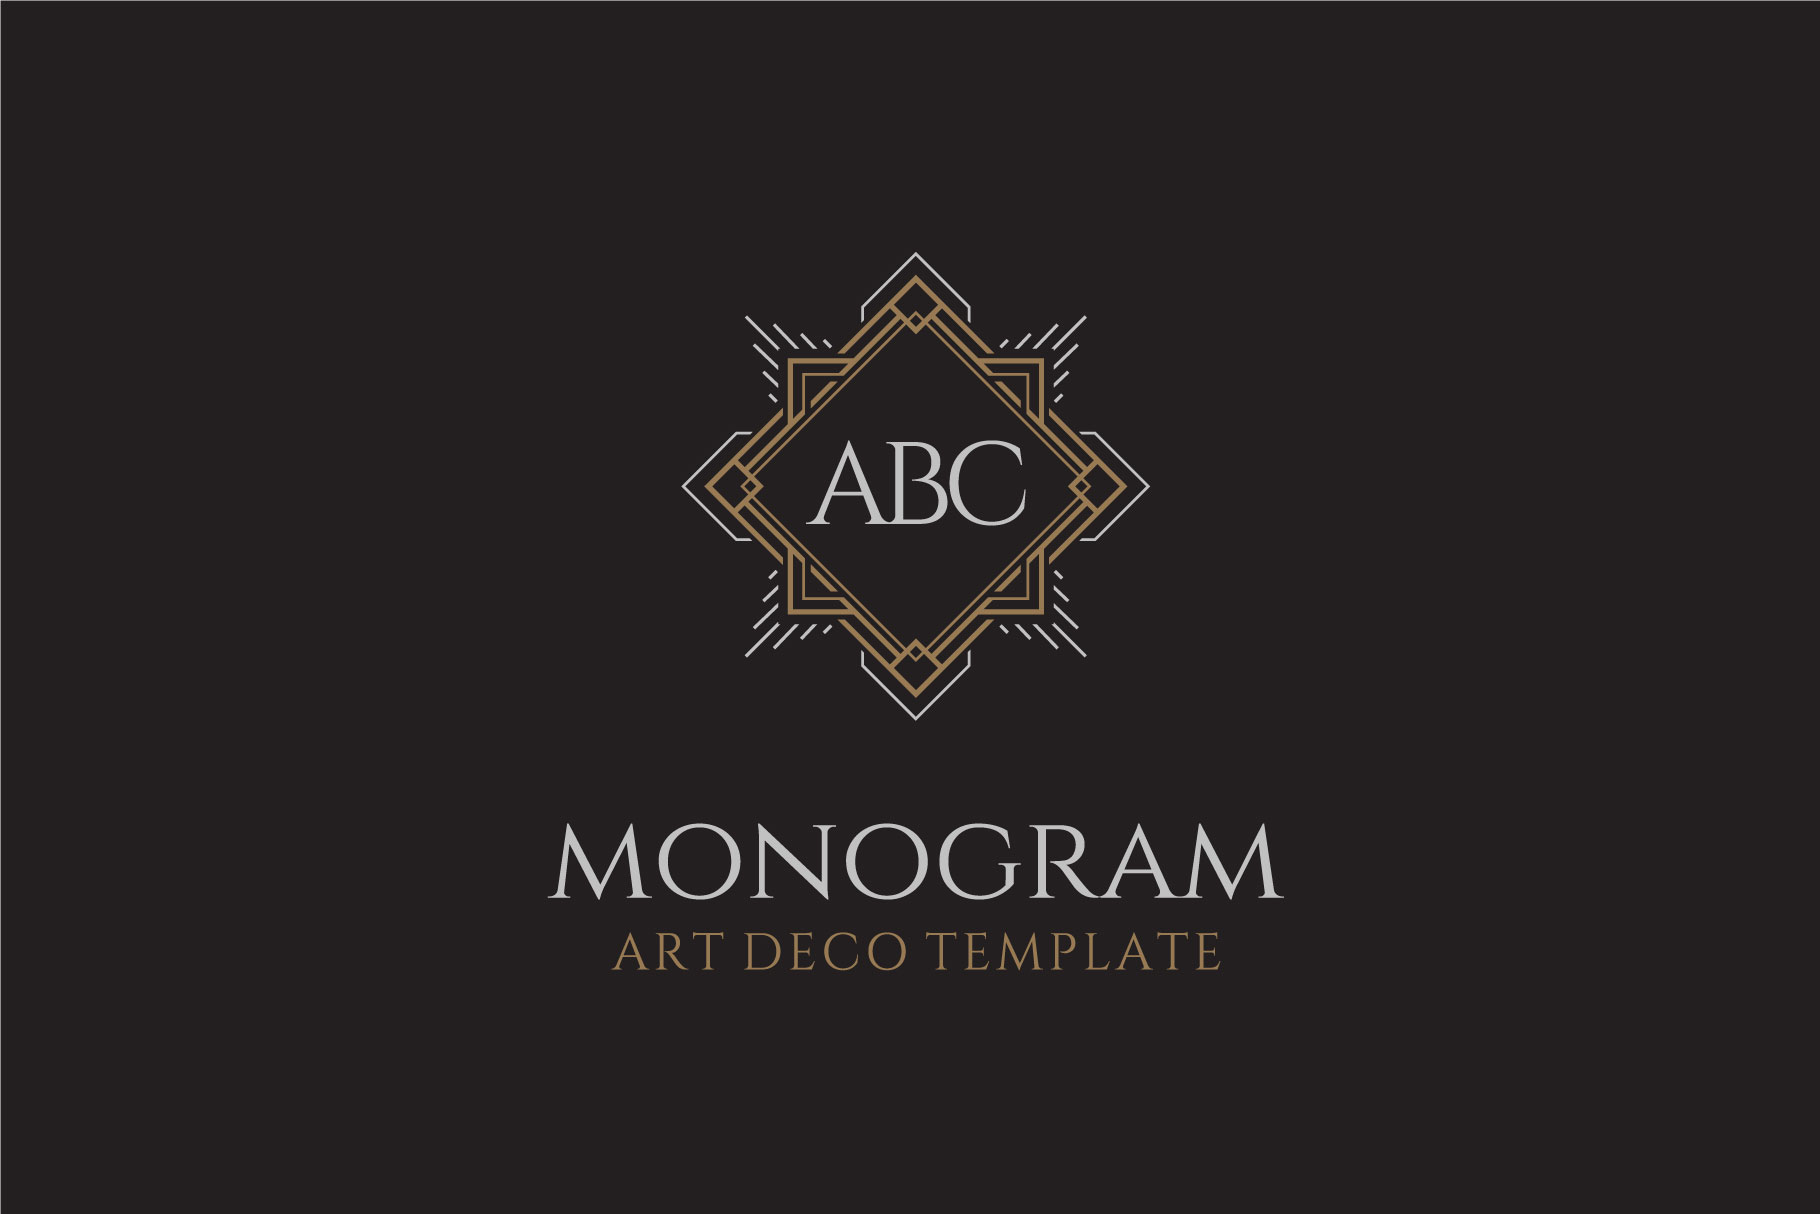 Download Free Luxury Art Deco Vintage Monogram Logo Graphic By Enola99d for Cricut Explore, Silhouette and other cutting machines.